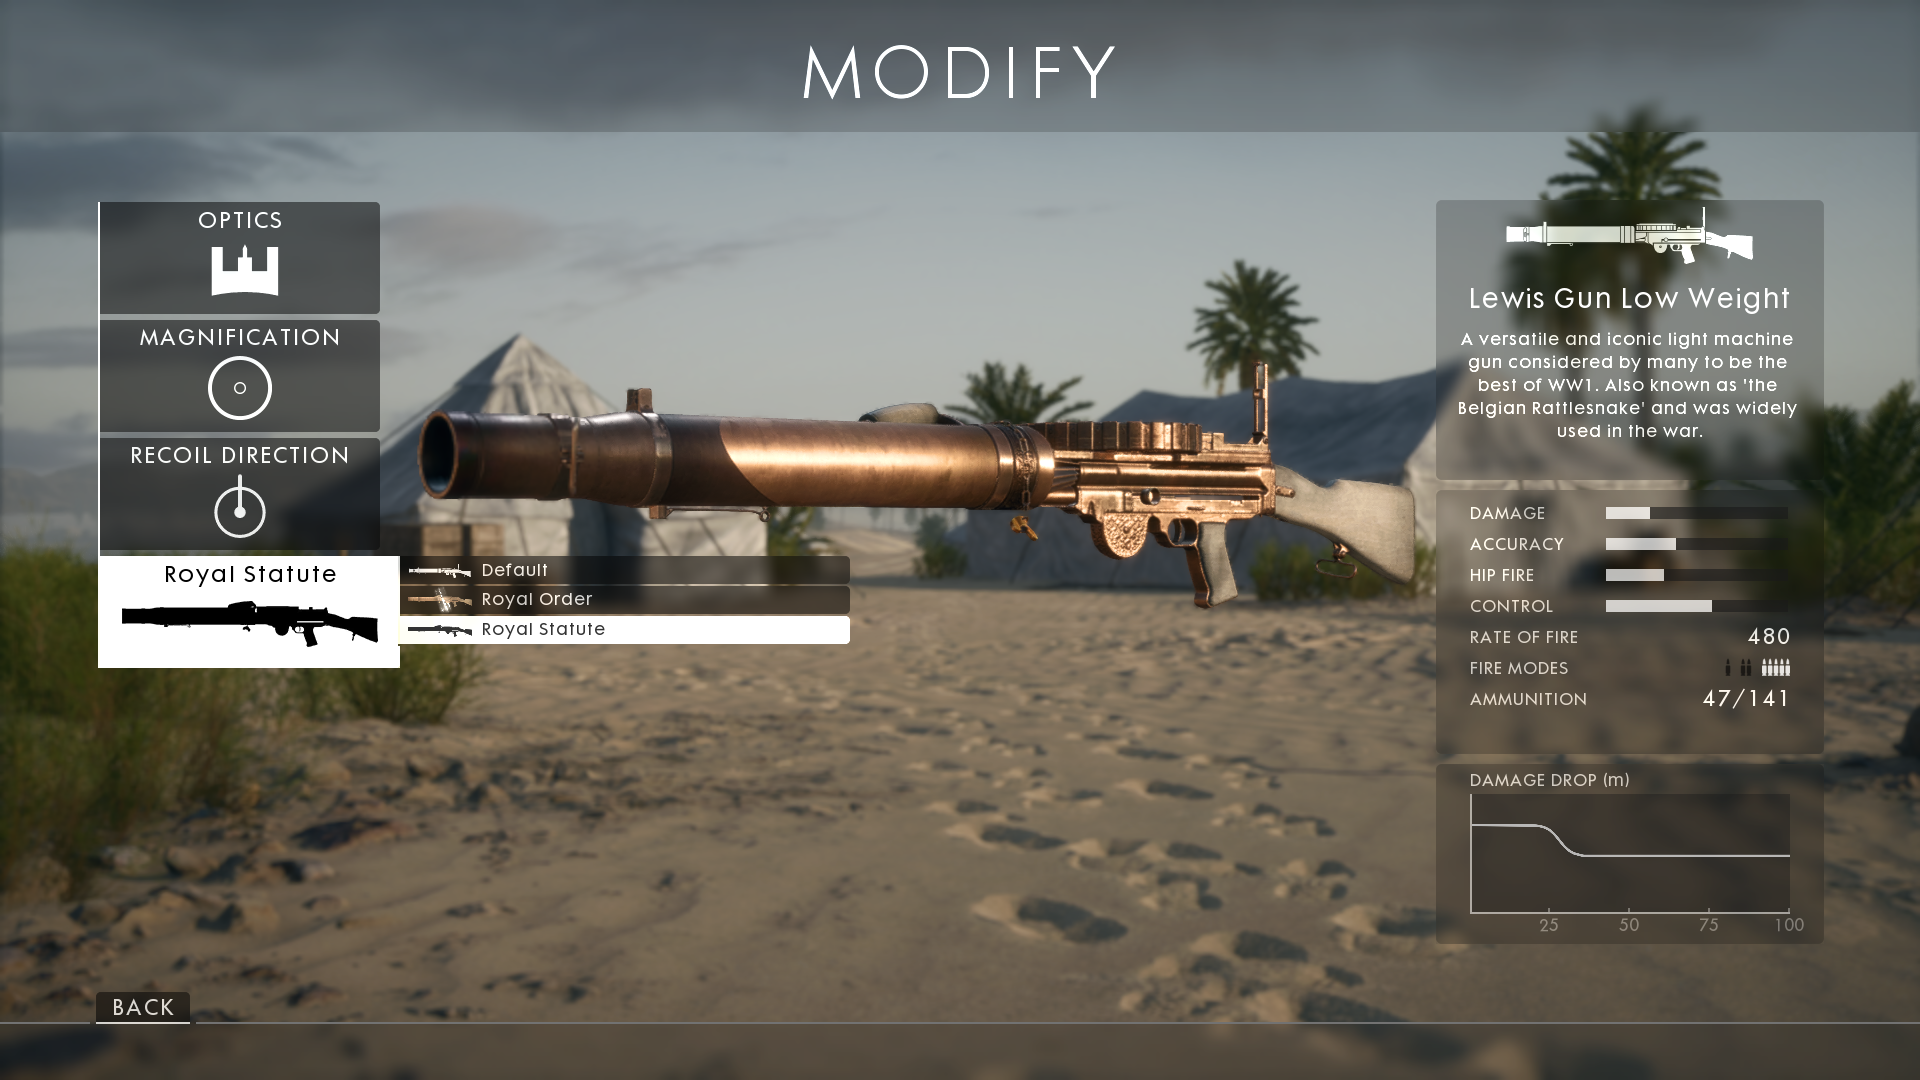 How to Customize Weapons in 'Battlefield 1'   Inverse